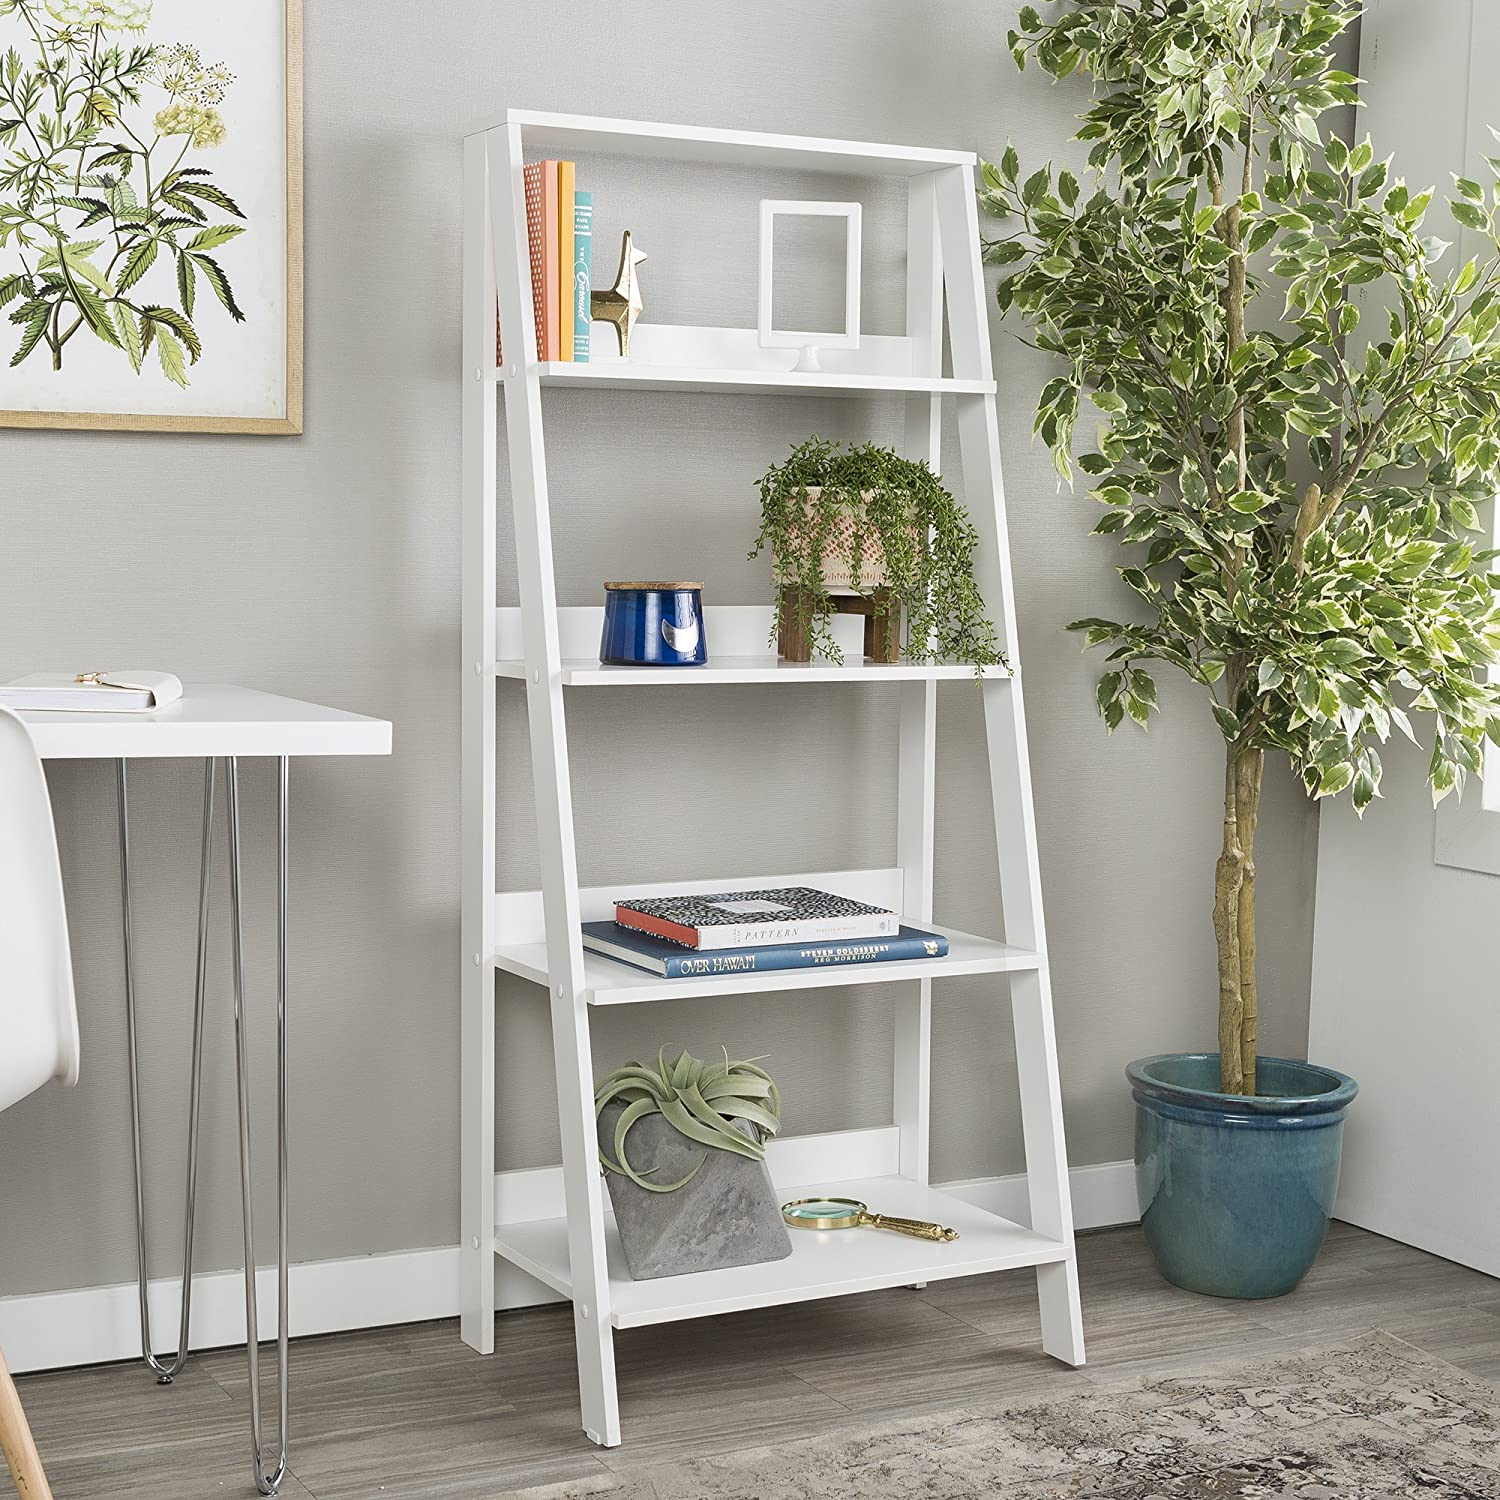 WE Furniture 4 Shelf Simple Modern Wood Ladder Bookcase Bookshelf Storage, White